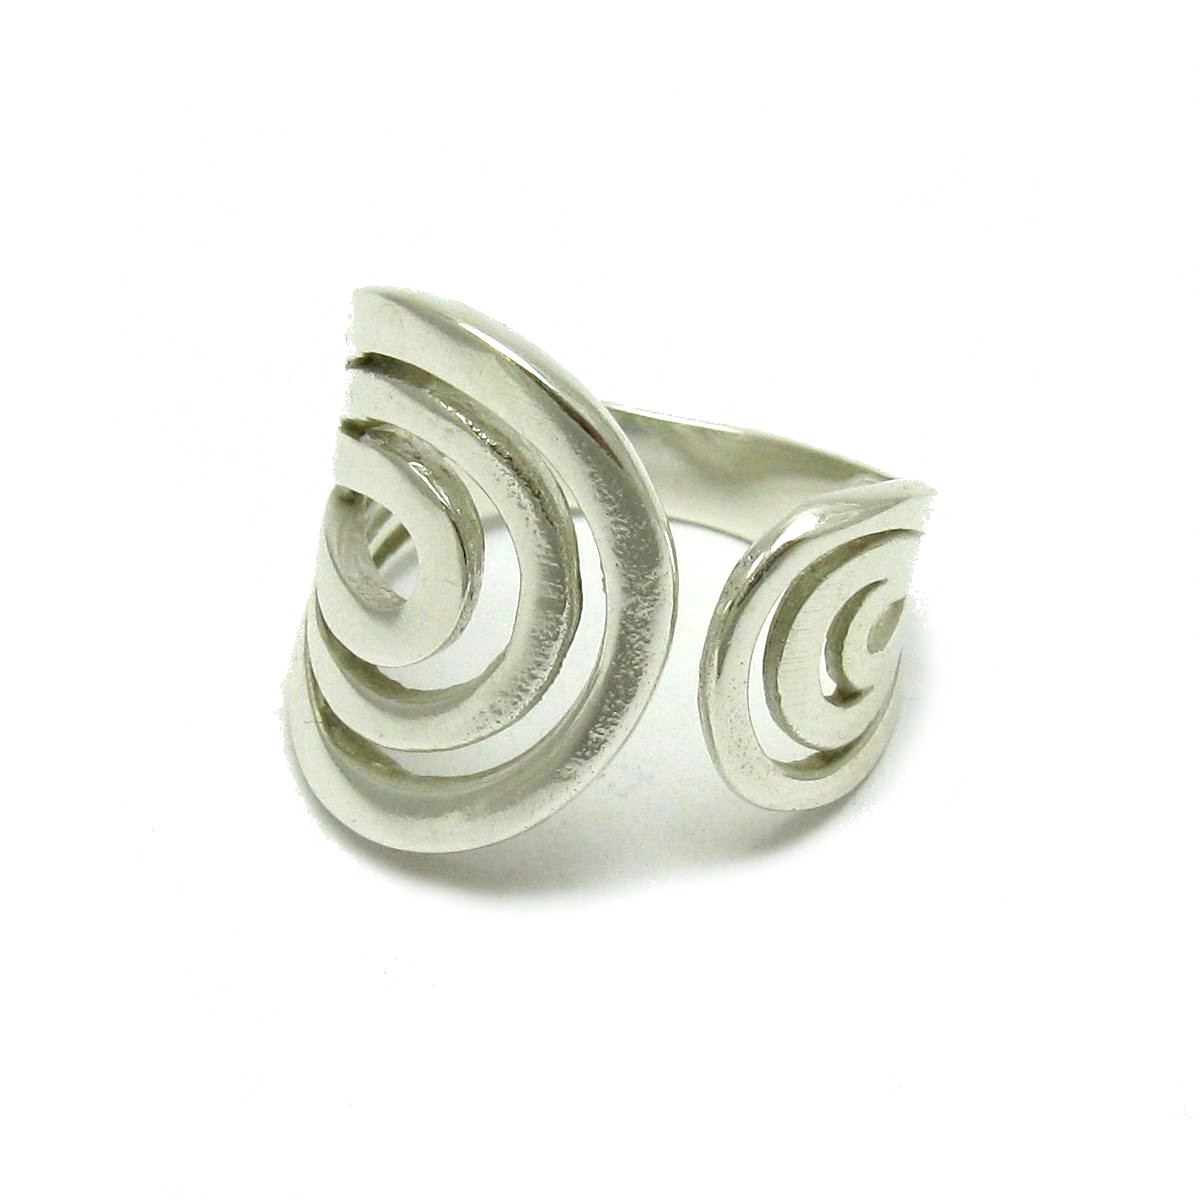 Silver ring - R001689